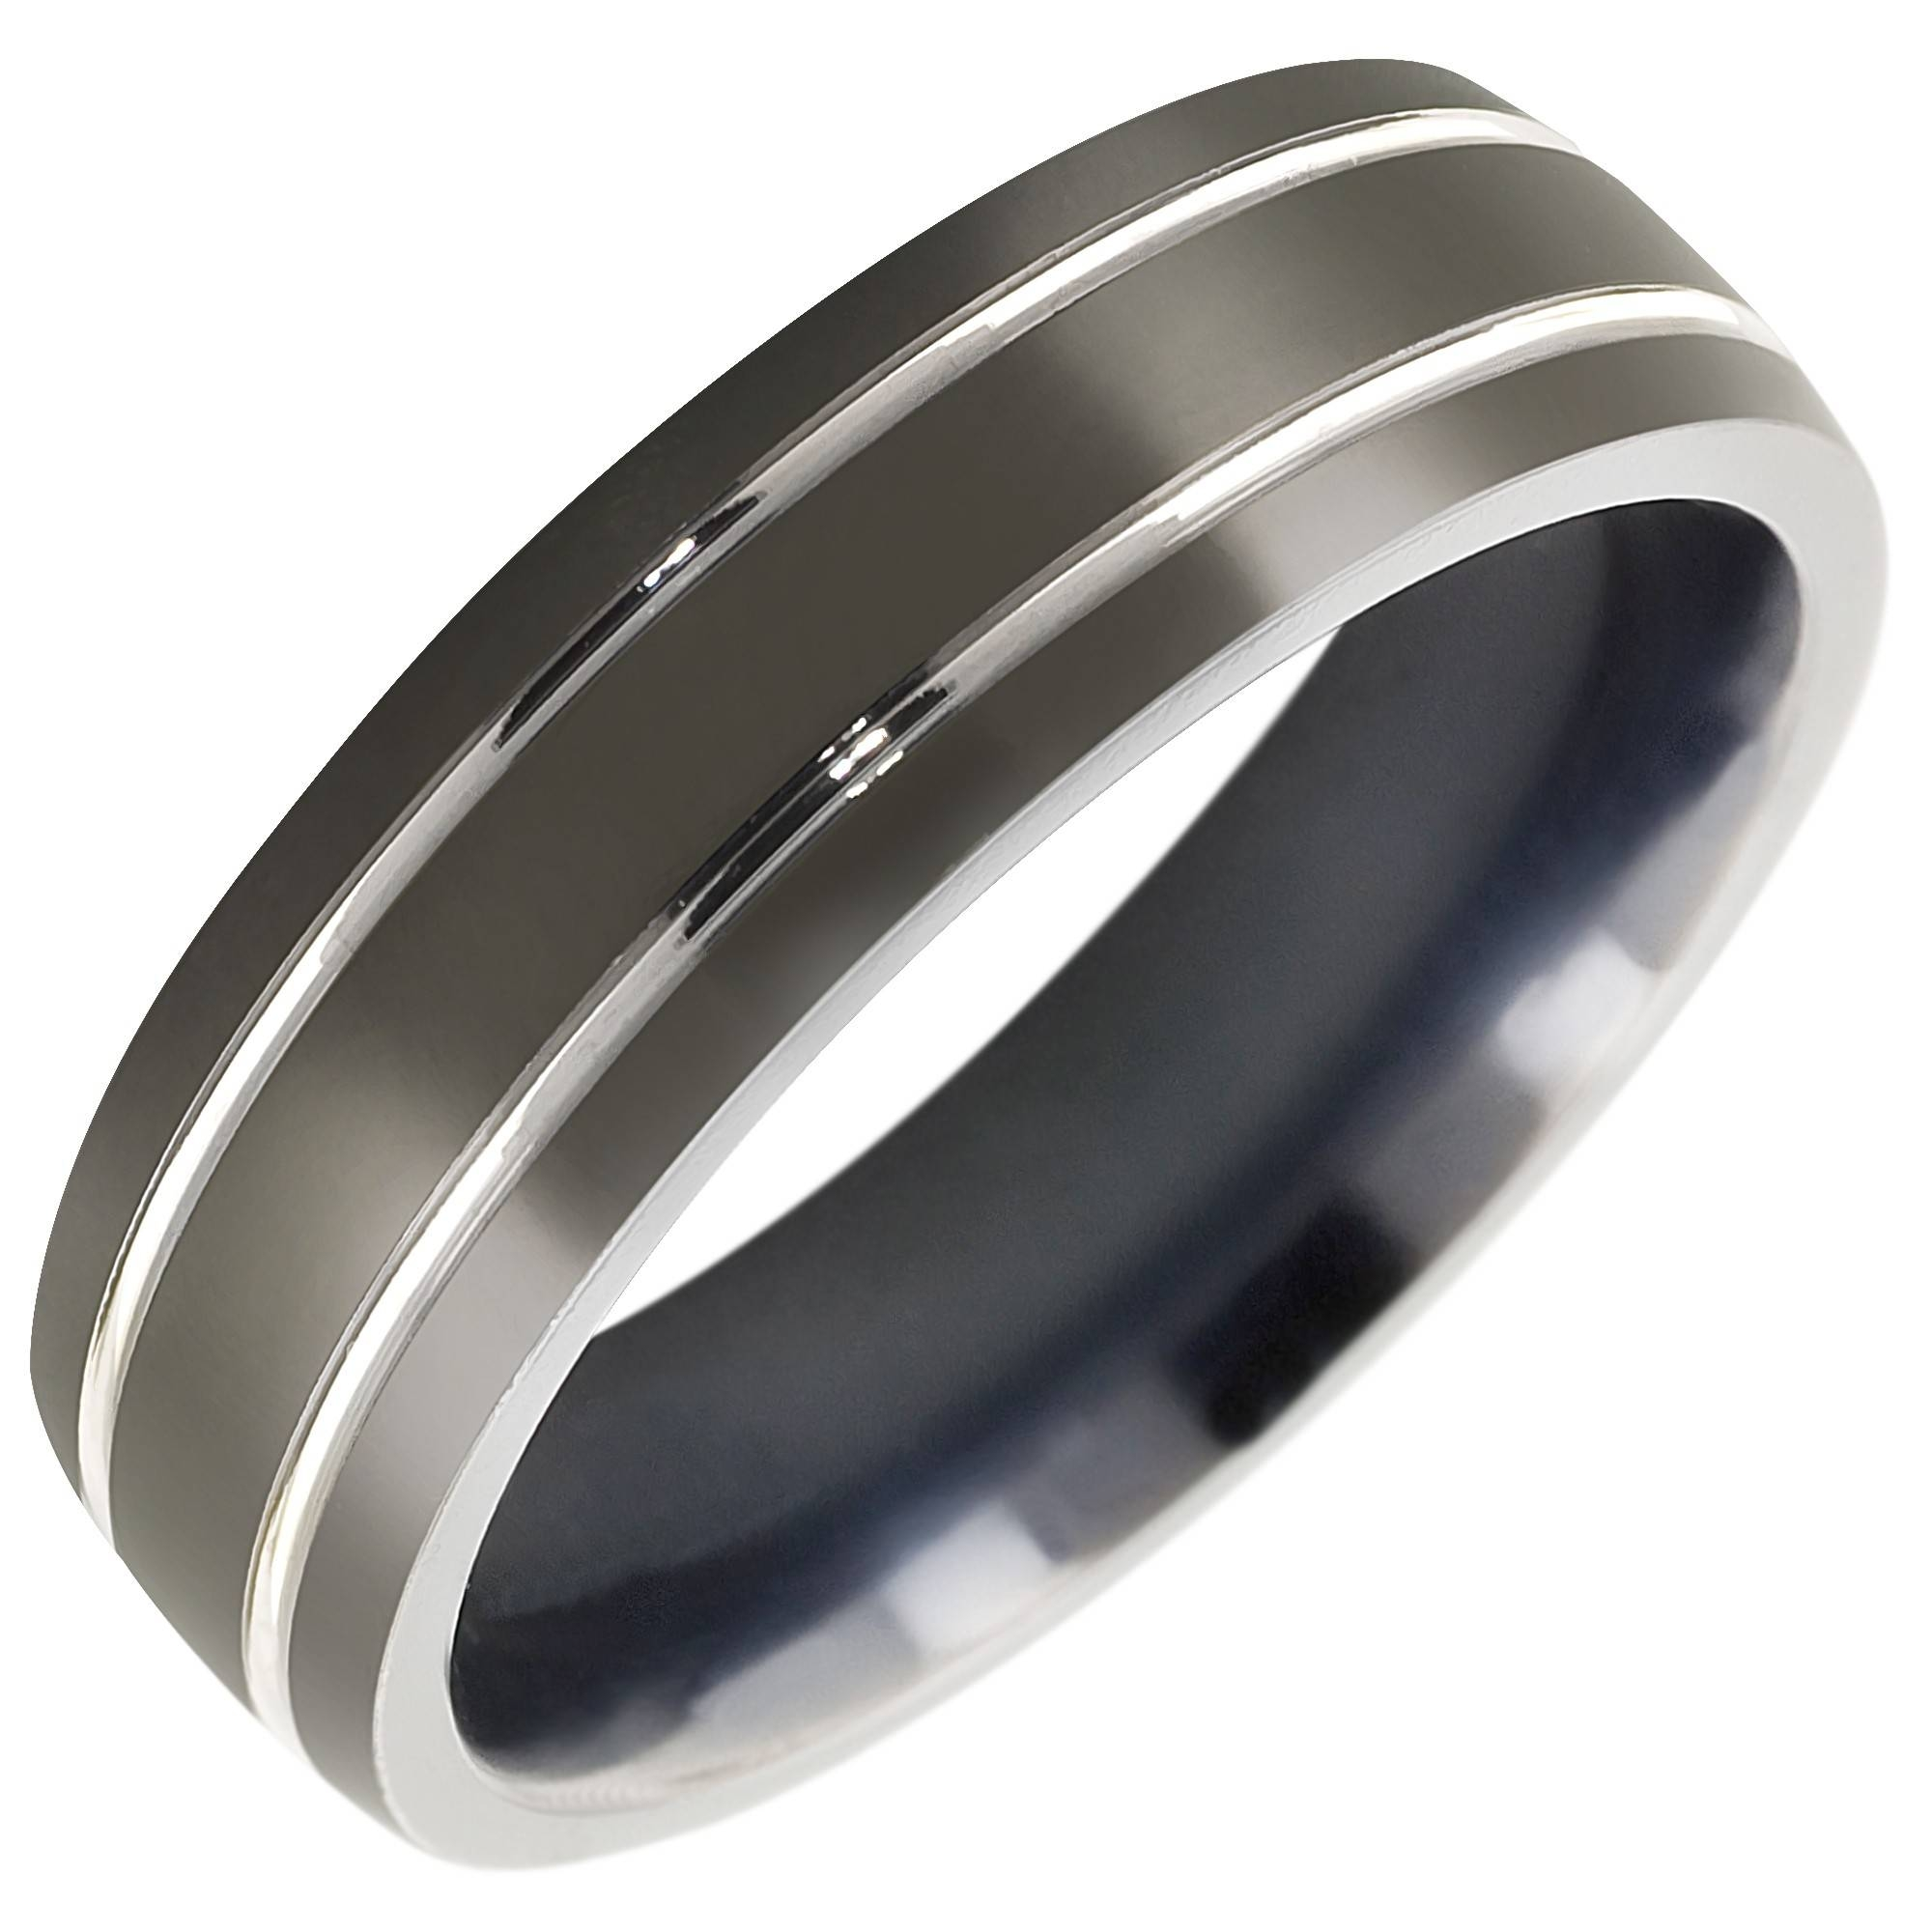 Mens Comfort Fit Wedding Band In Titanium (7Mm) With Regard To 7Mm Titanium Wedding Bands (View 7 of 15)